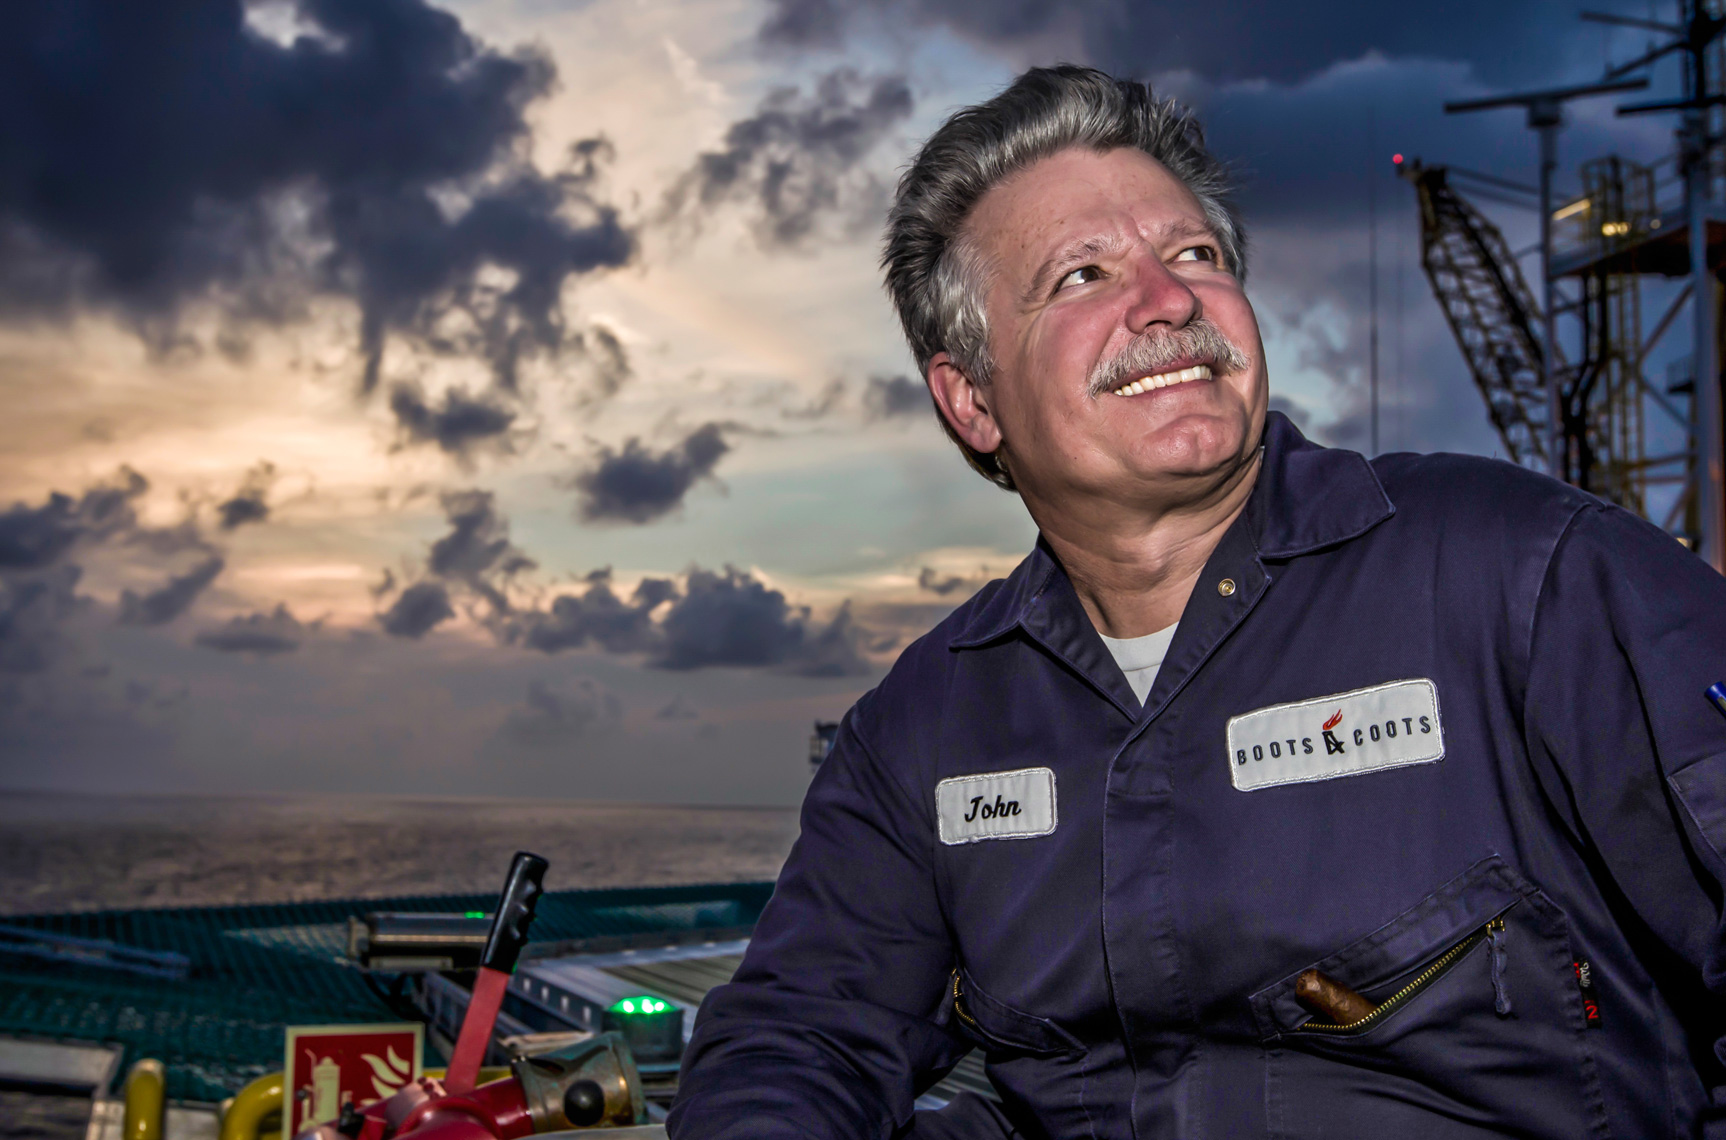 Global relief well advisor sits for a portrait on the Transocean Development Driller 3 after completing the day in the Gulf of Mexico.